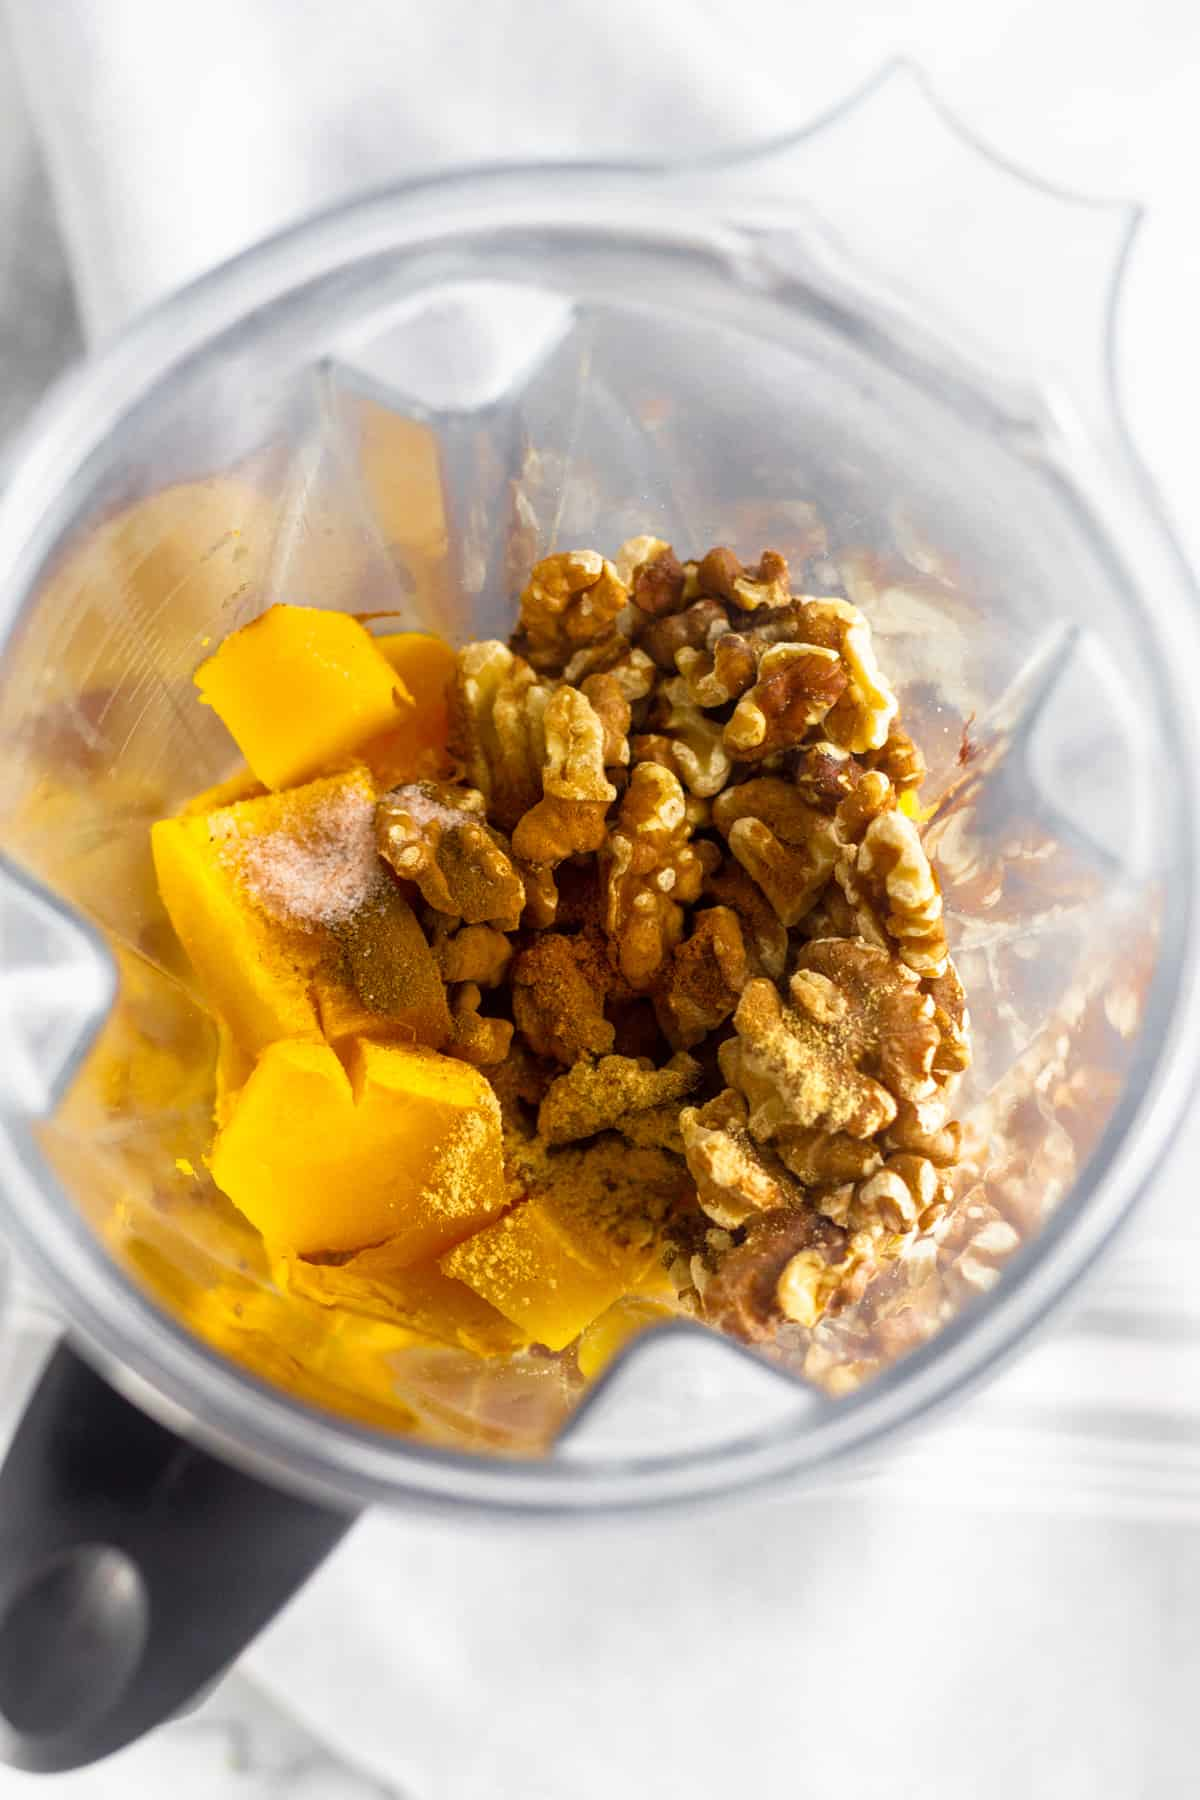 A blender filled with fresh pumpkin, toasted walnuts, and spices to make pumpkin pie butter